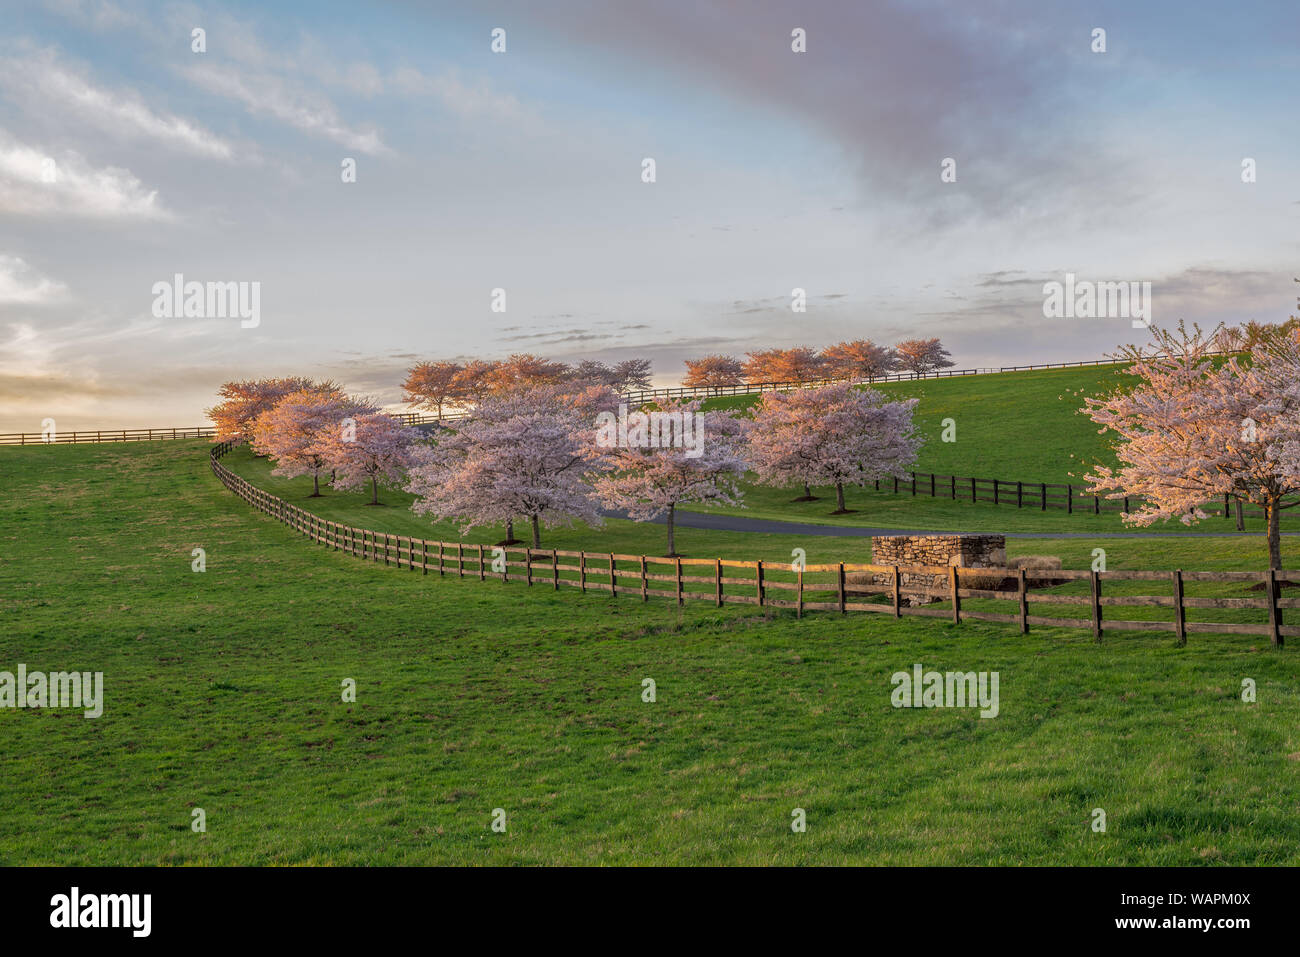 Blooming cherry trees, illuminated by late afternoon light, line a long driveway and fence. Stock Photo